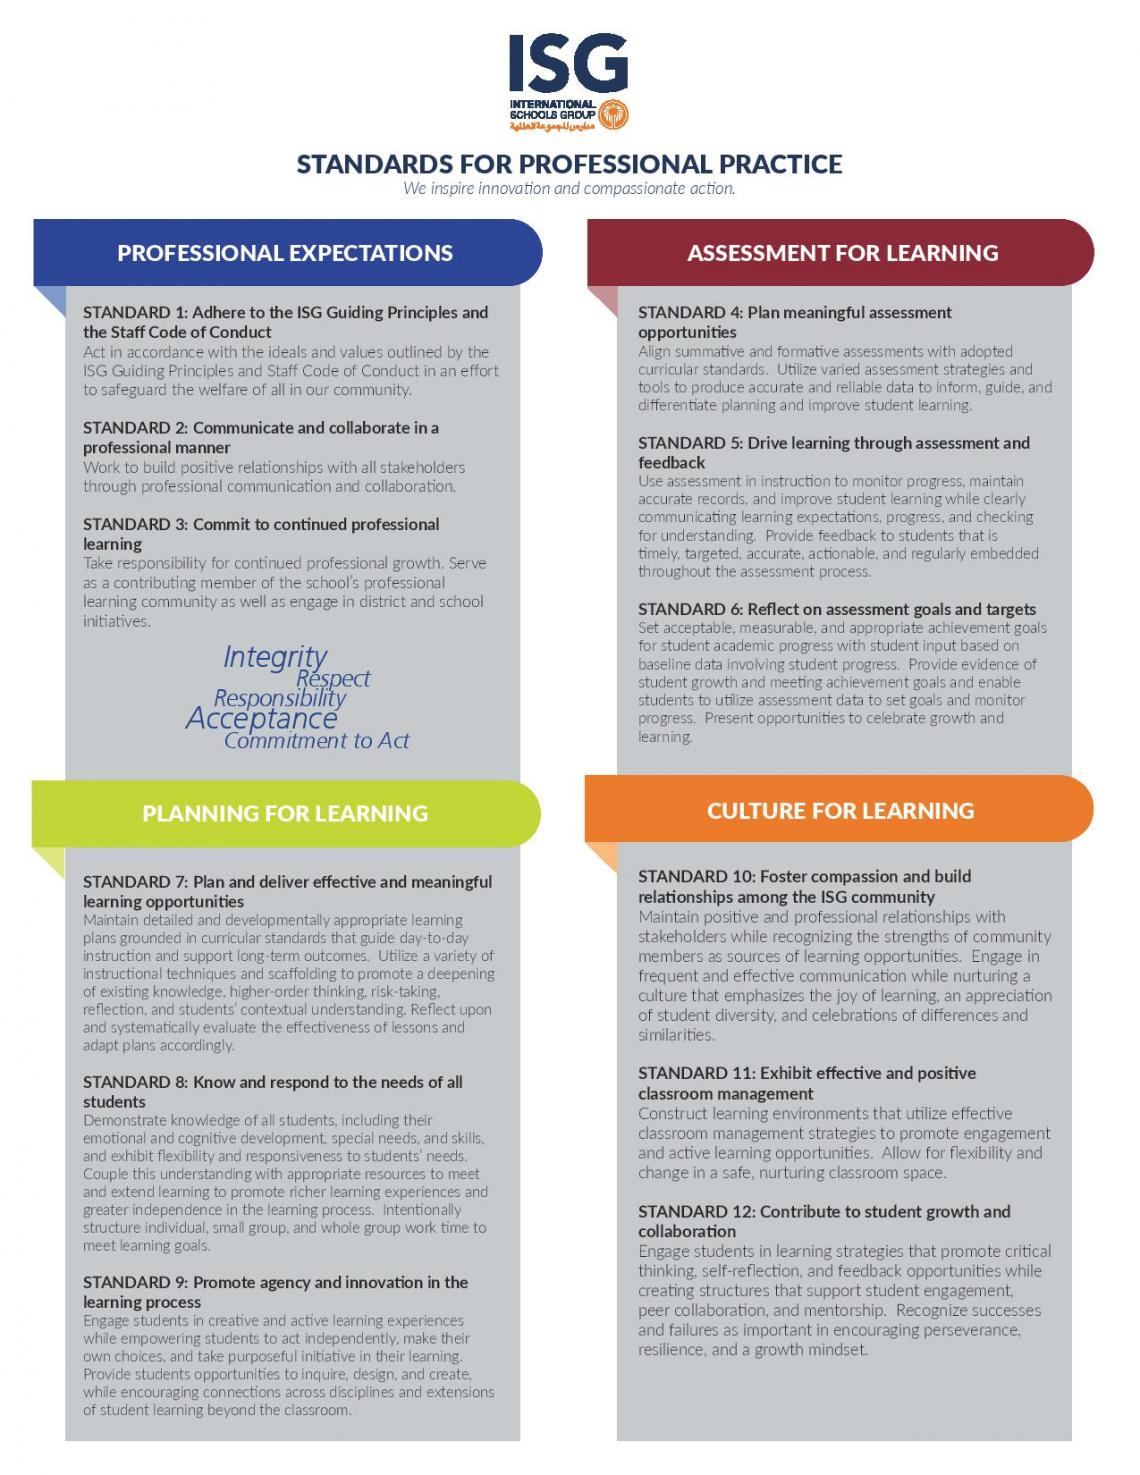 ISG Standards for Professional Practice